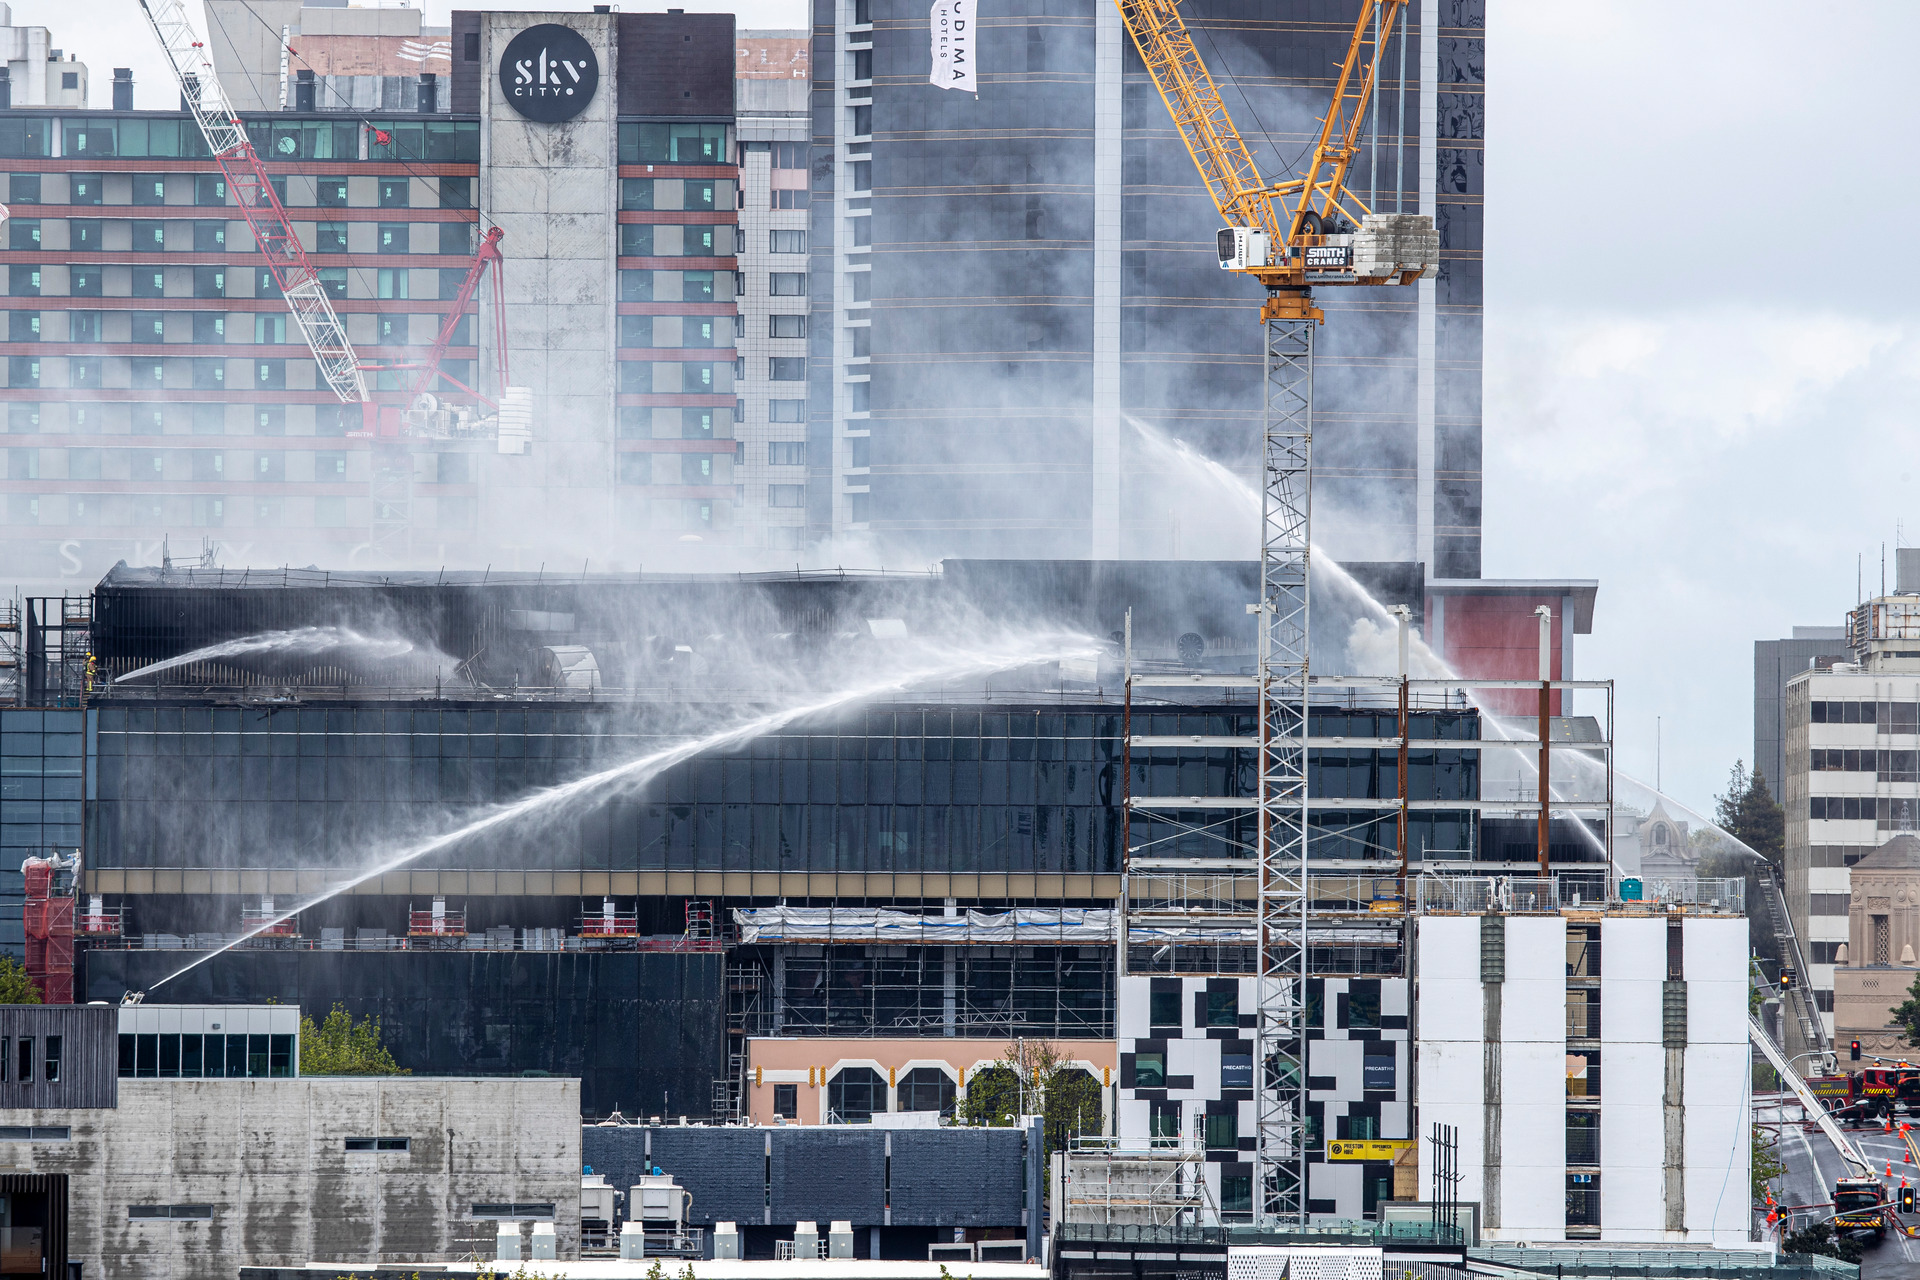 Live: Toxic tide of water from SkyCity fire enters harbour